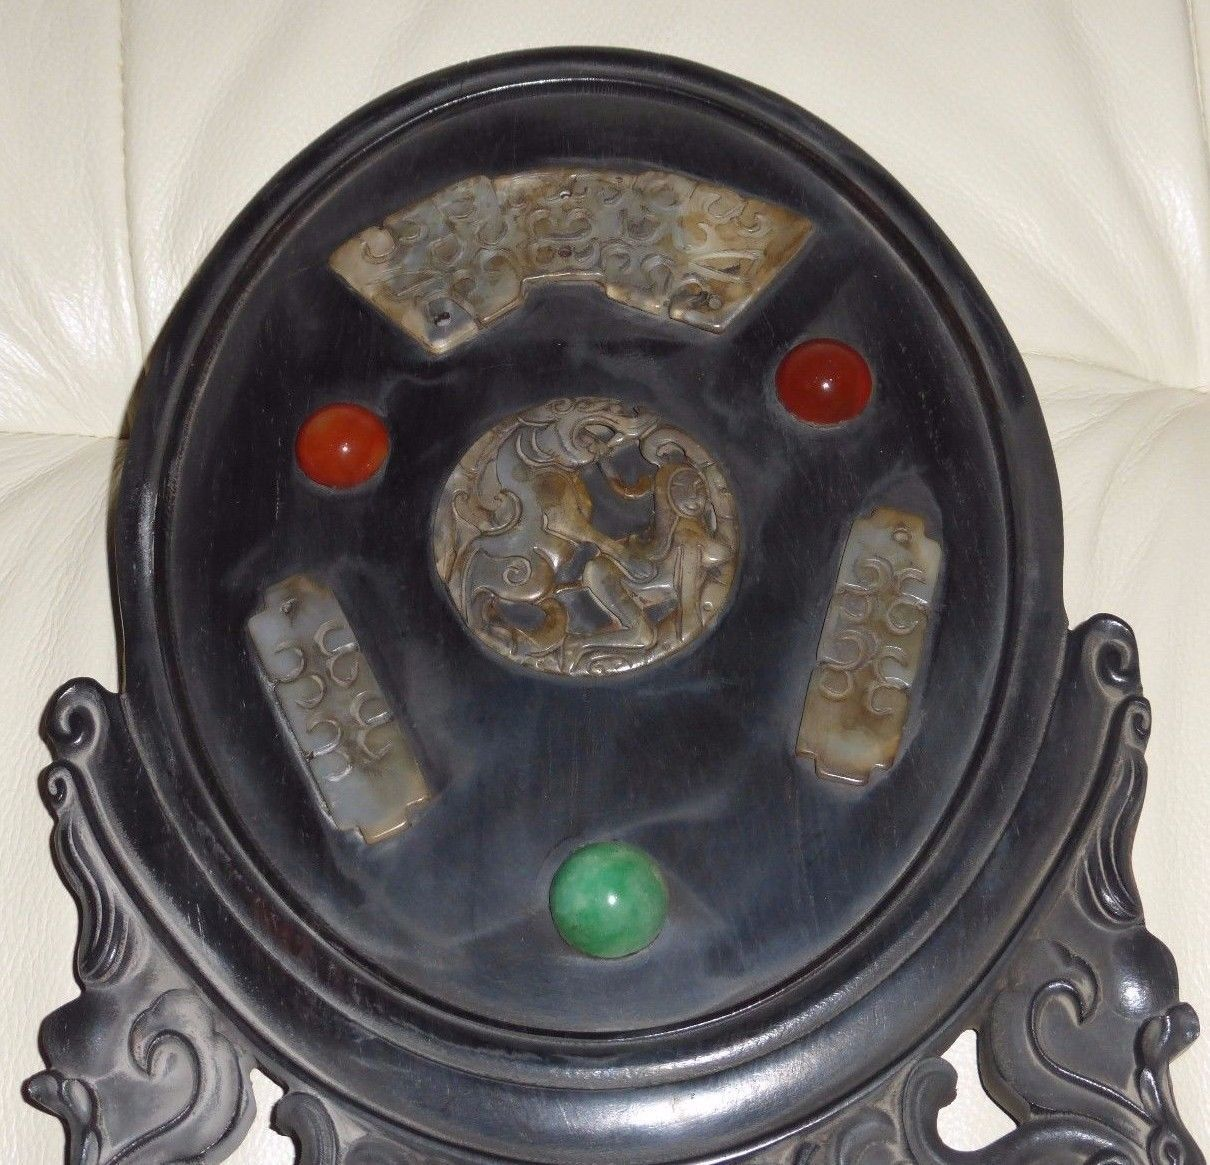 SUPERB ANTIQUE CHINESE KAMA SUTRA TABLE SCREEN WITH CARVED JADE & APPLIED STONES